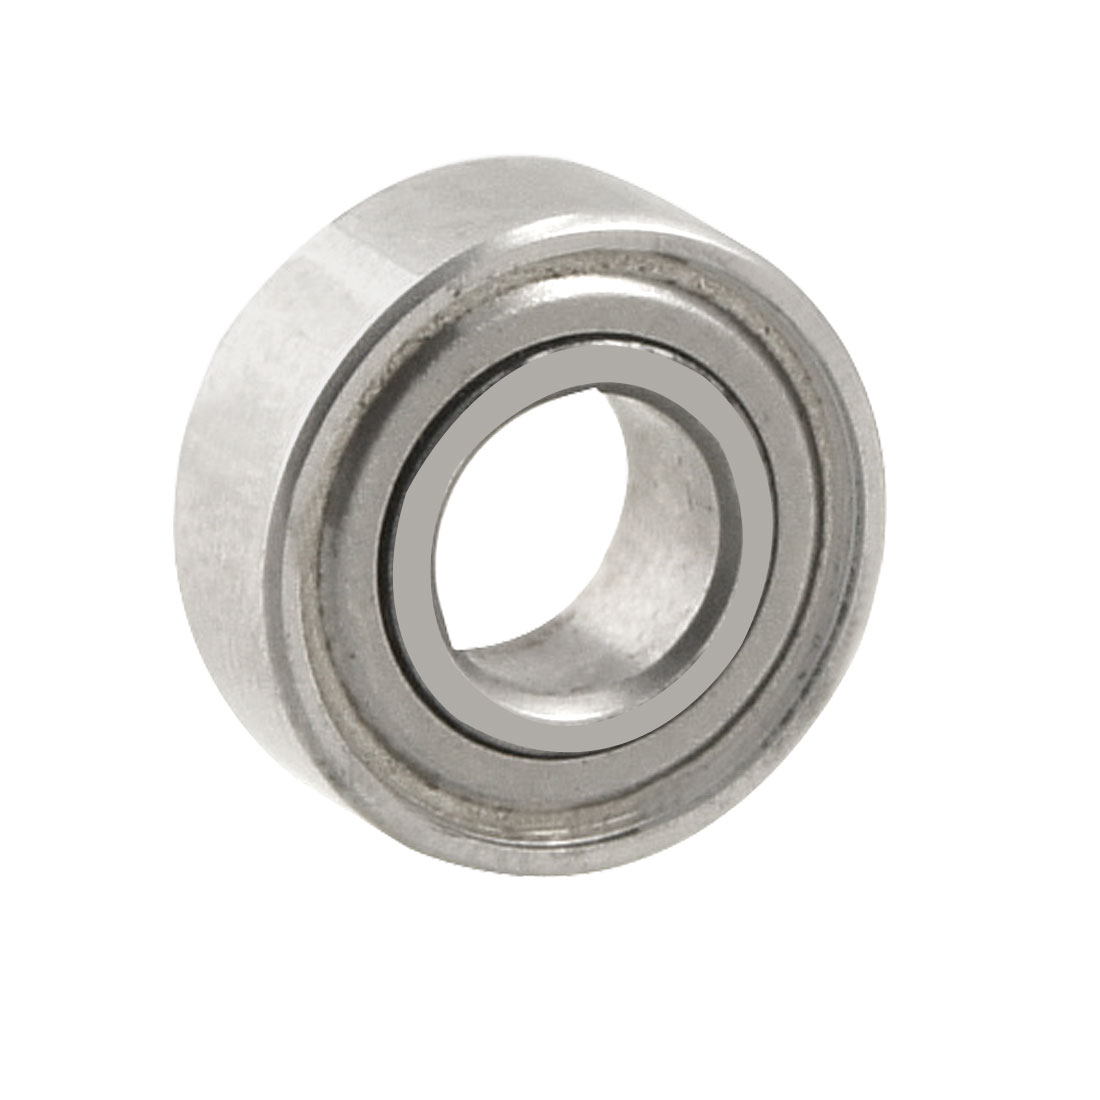 Silver Tone 11mm x 5mm x 4mm Metal Double Sealed Ball Bearing